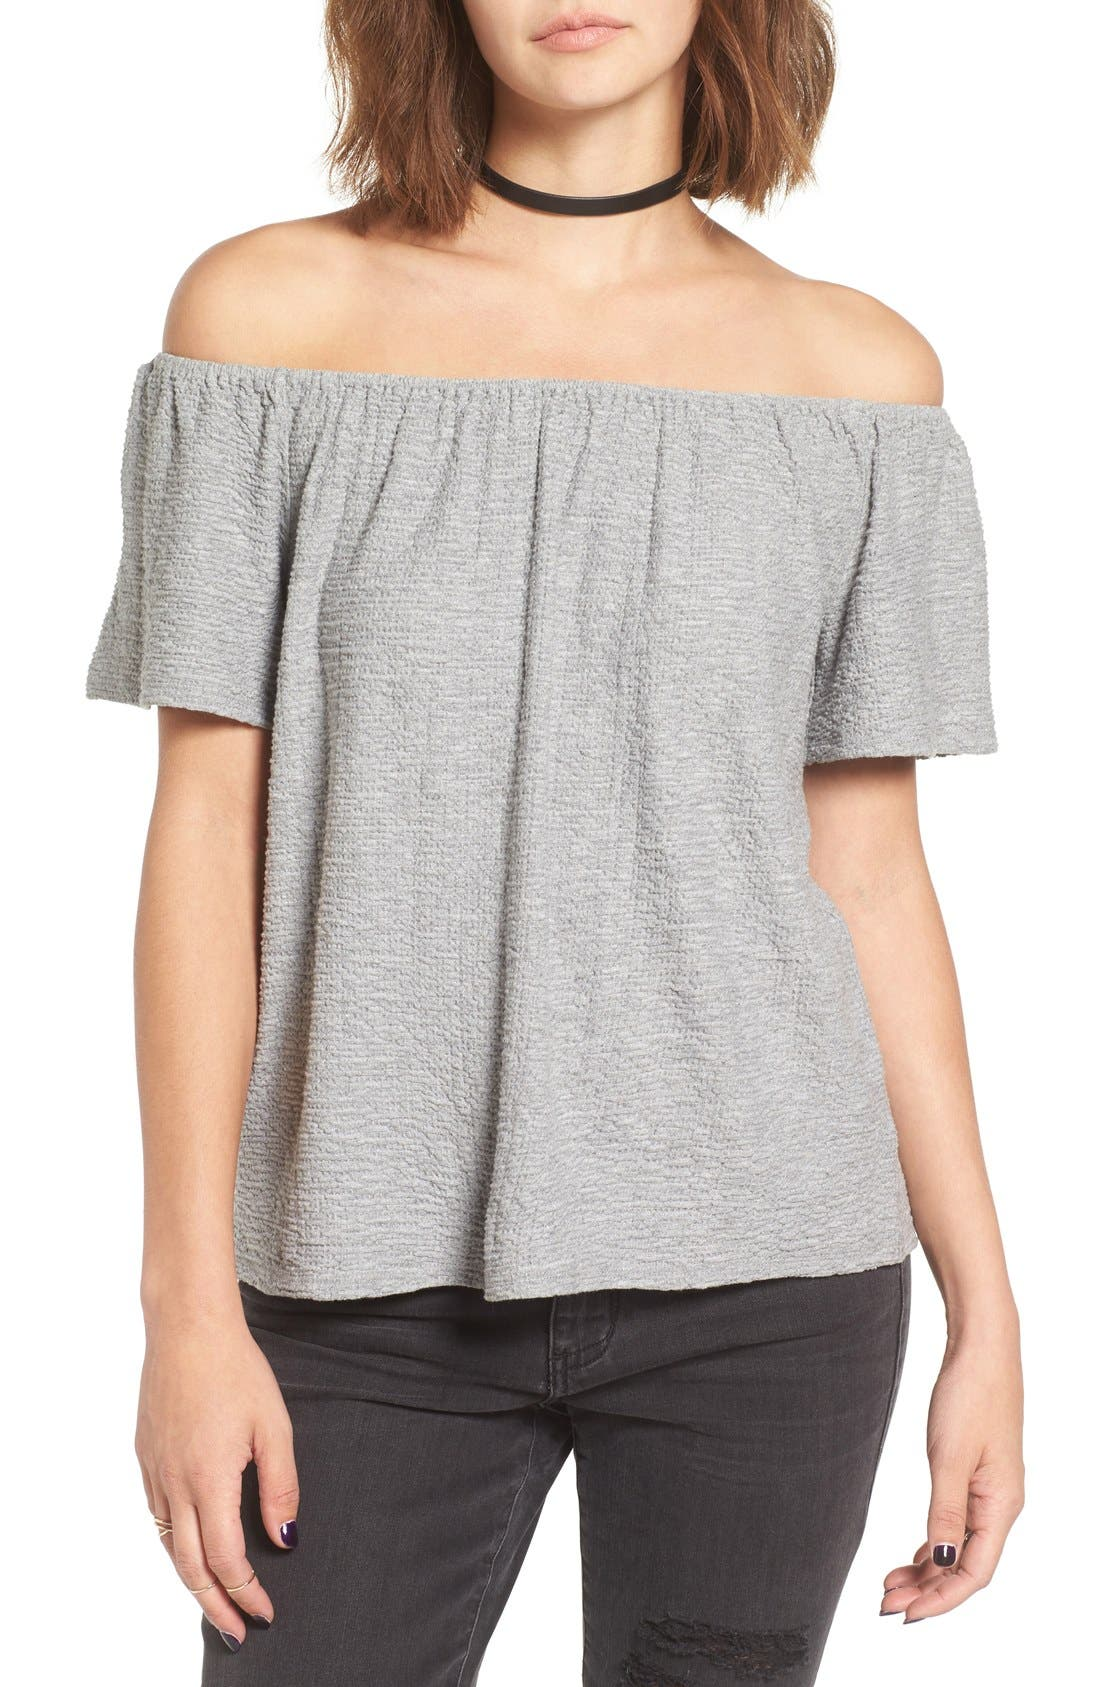 Alternate Image 1 Selected - Chloe & Katie Textured Off the Shoulder Top